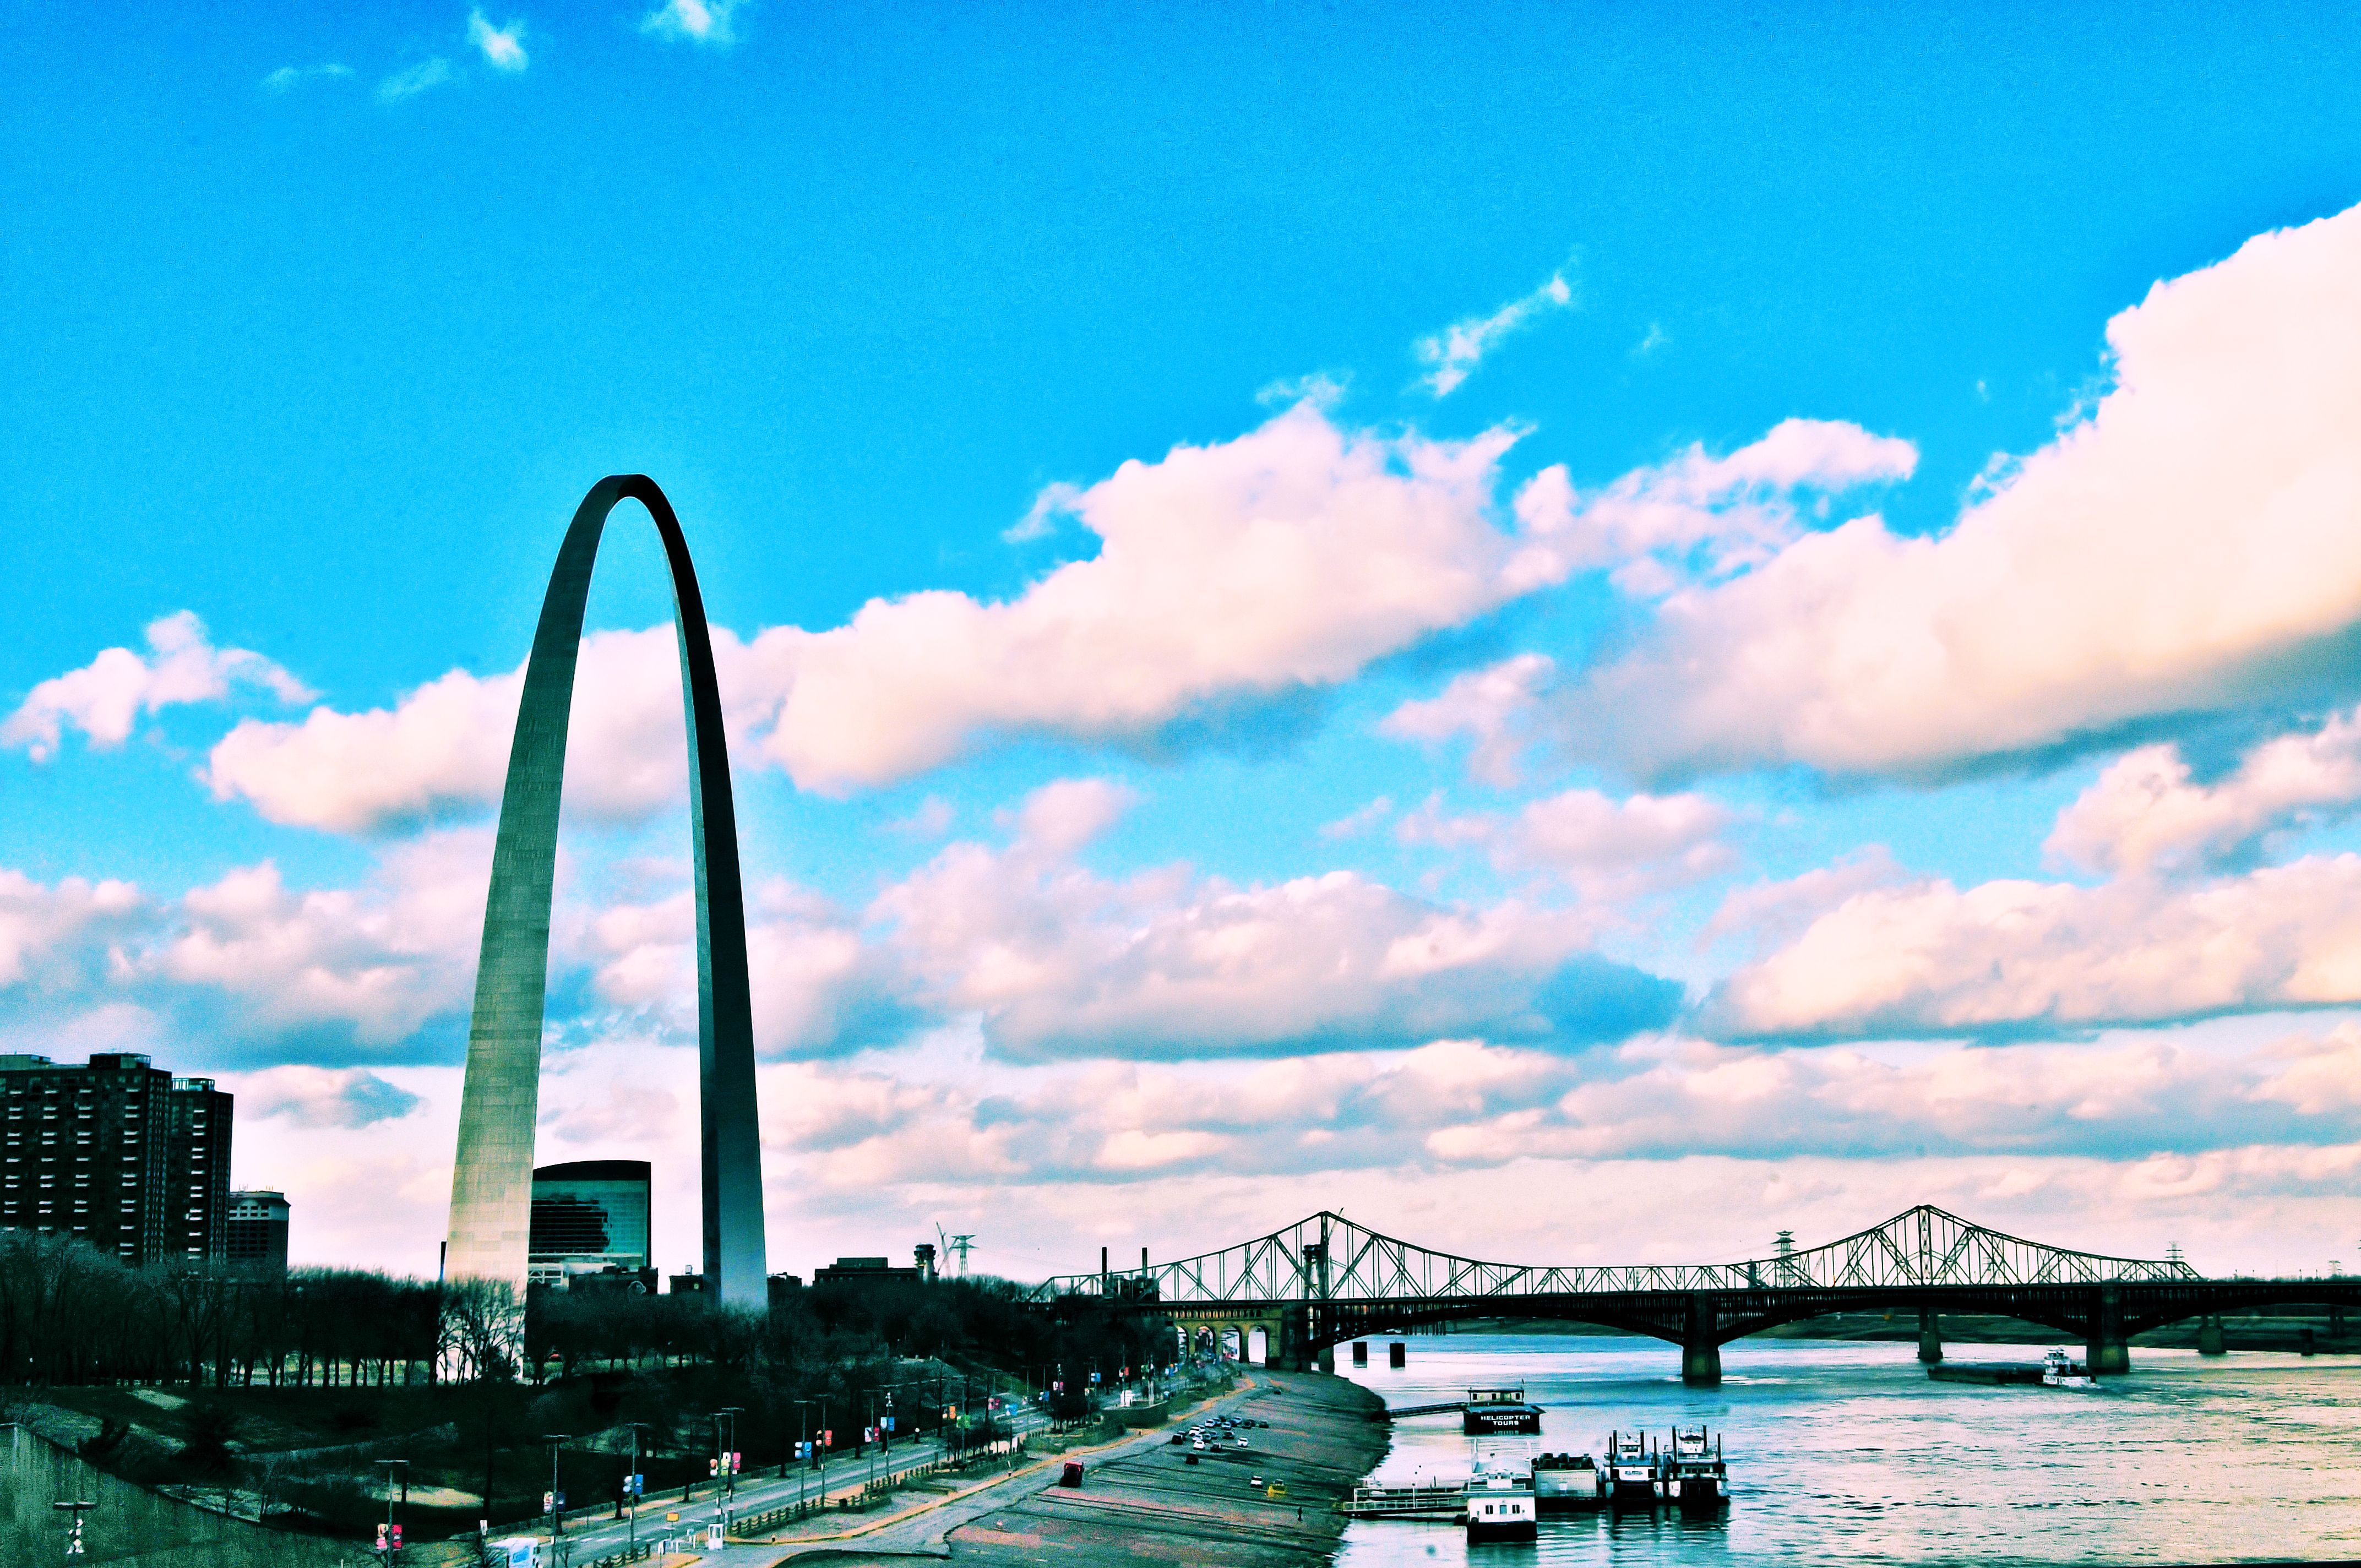 St. Louis...one of the most memorable skylines in the United States.